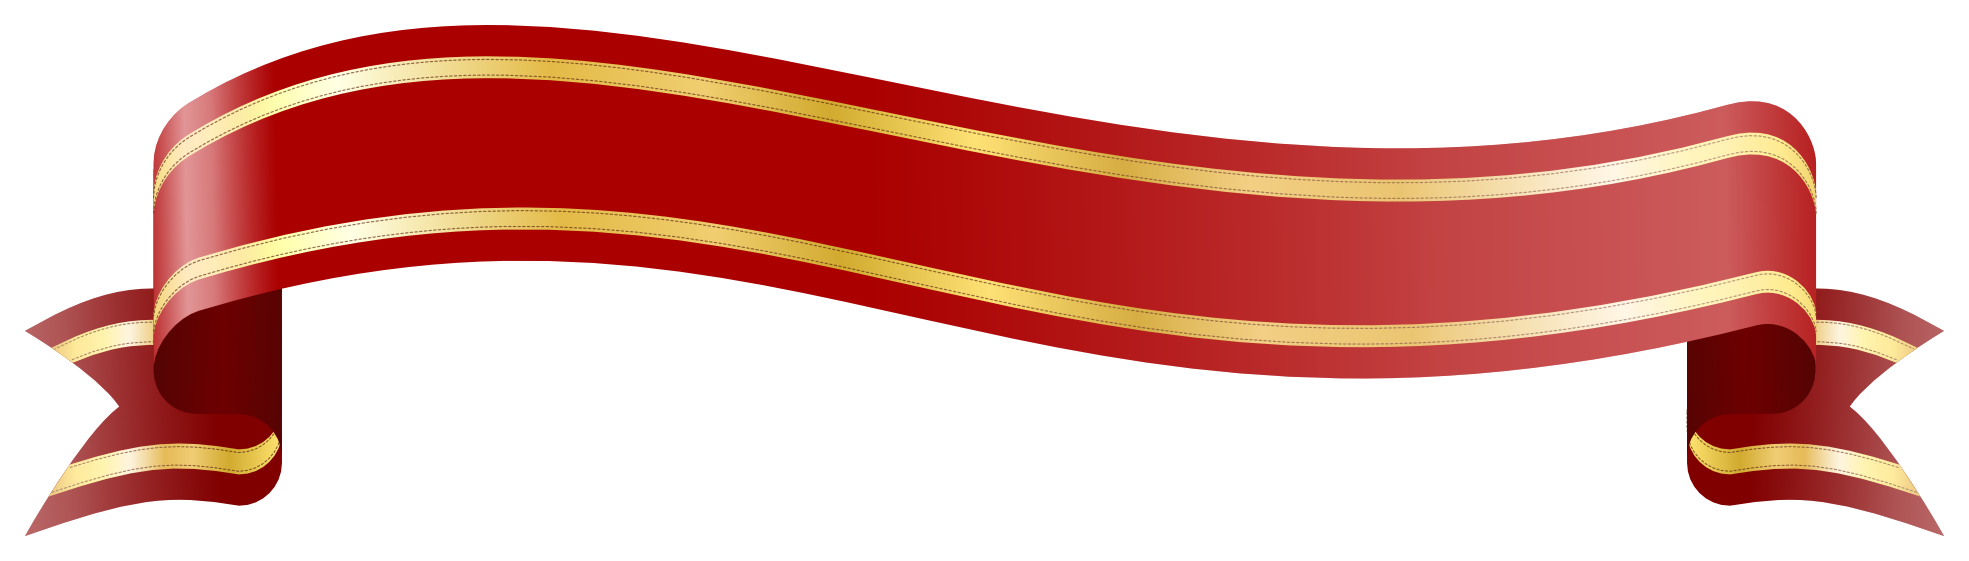 Banner transparent png. Ribbon images red gift